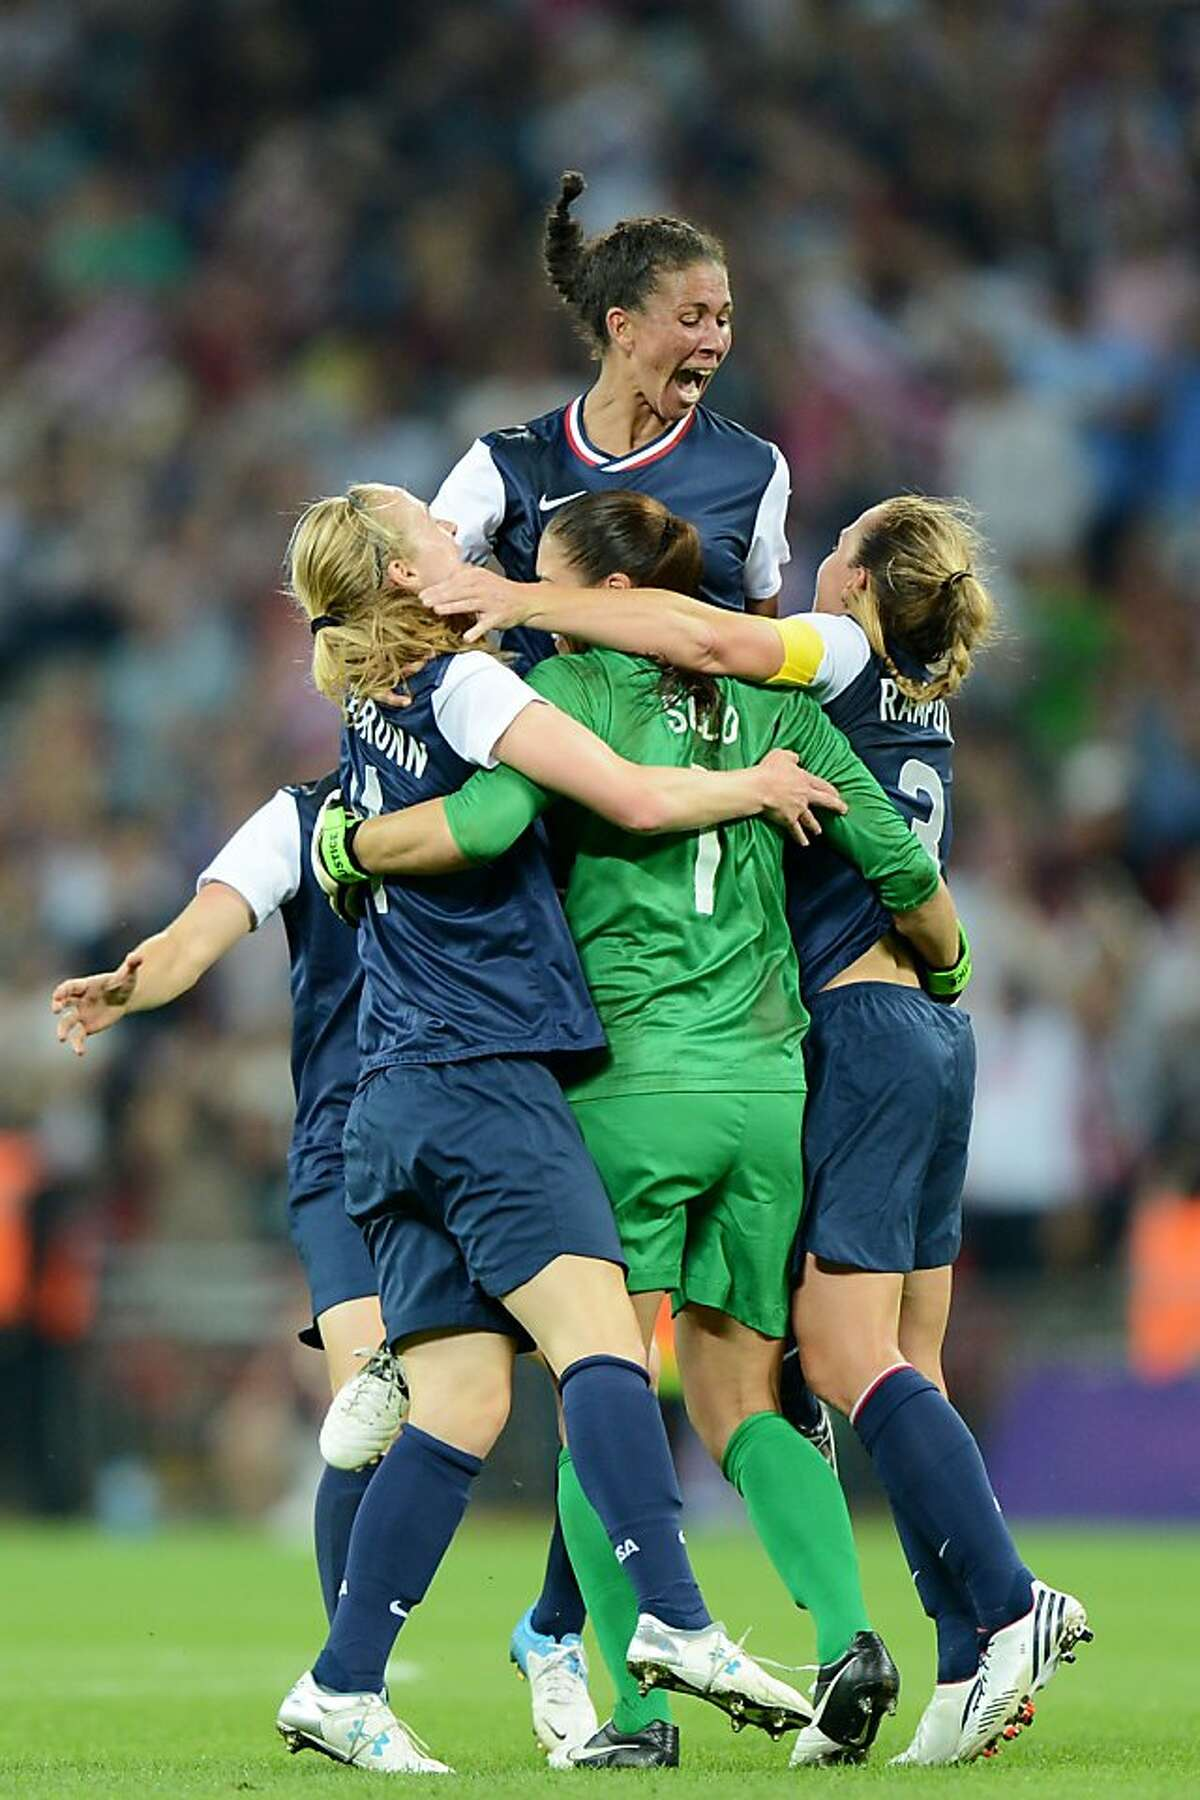 LONDON, ENGLAND - AUGUST 09: Hope Solo #1, Shannon Boxx #7 and Christie Rampone of the United States celebrates after defeating Japan by a score of 2-1 to win the Women's Football gold medal match on Day 13 of the London 2012 Olympic Games at Wembley Stadium on August 9, 2012 in London, England. (Photo by Michael Regan/Getty Images)